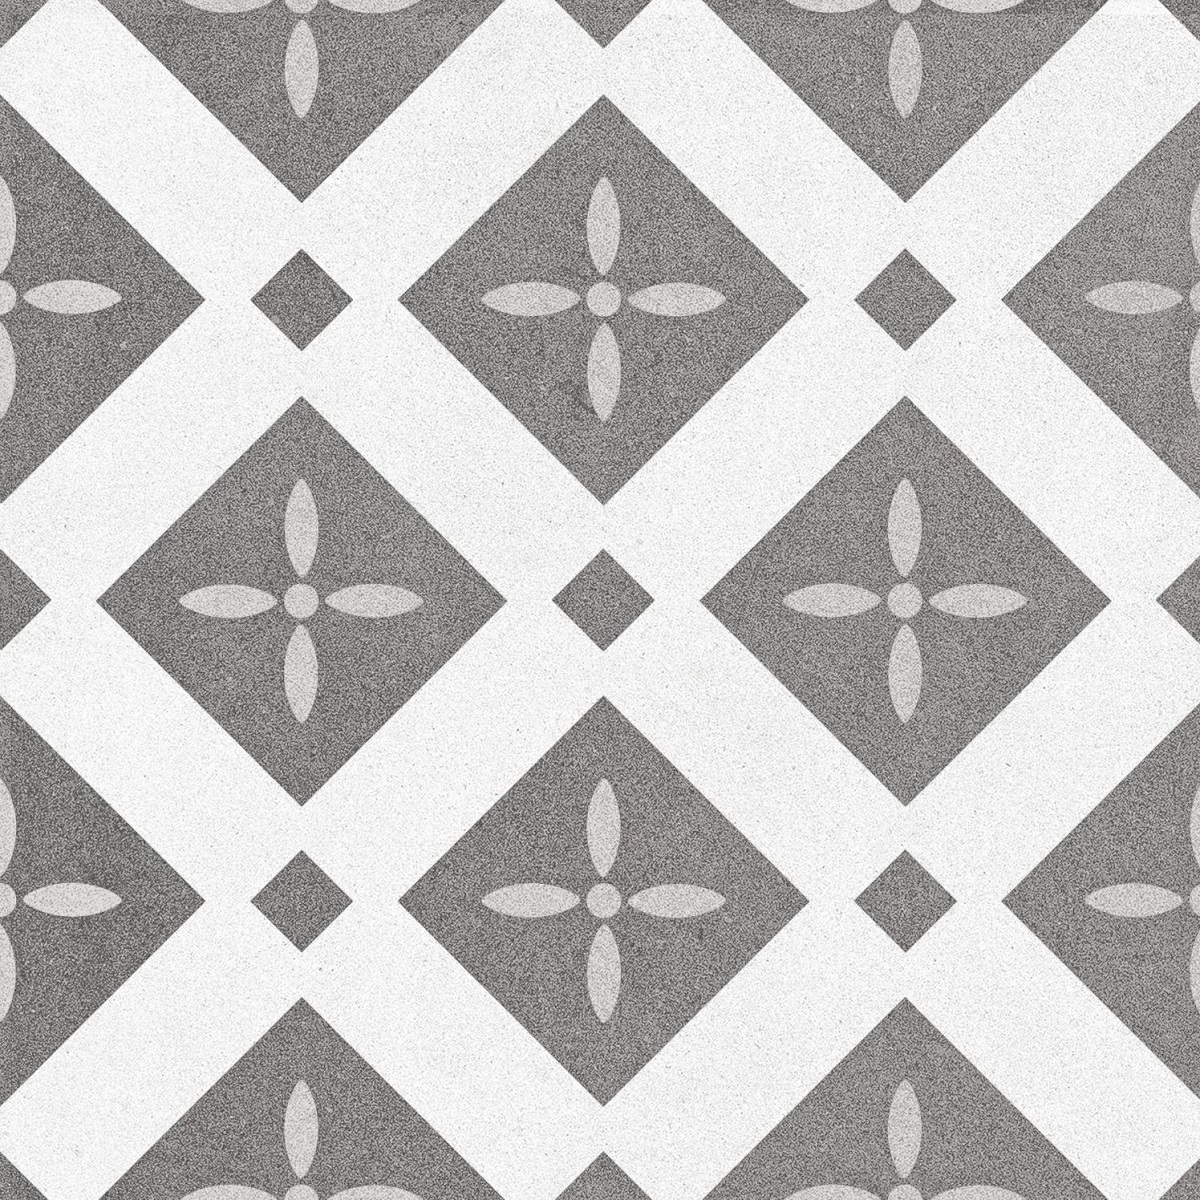 image/catalog/product_series_tiles/1906/Cuadrado_Eiffel_smaller_pixel.jpg